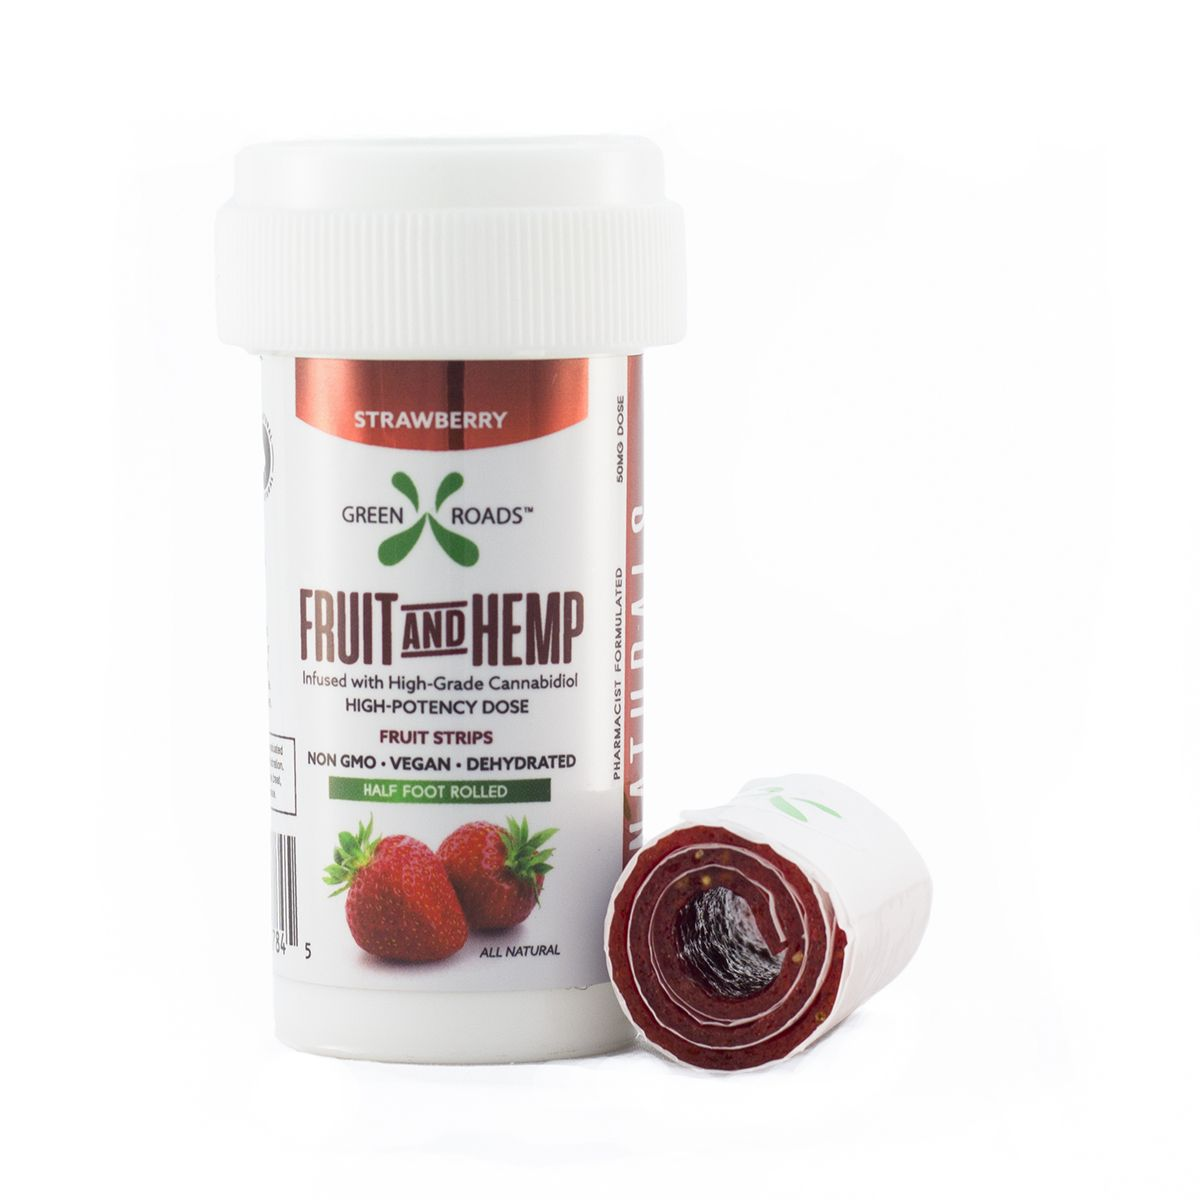 CBD Hemp & Fruit Vegan Fruit Strip Strawberry 50 mg 6 inches